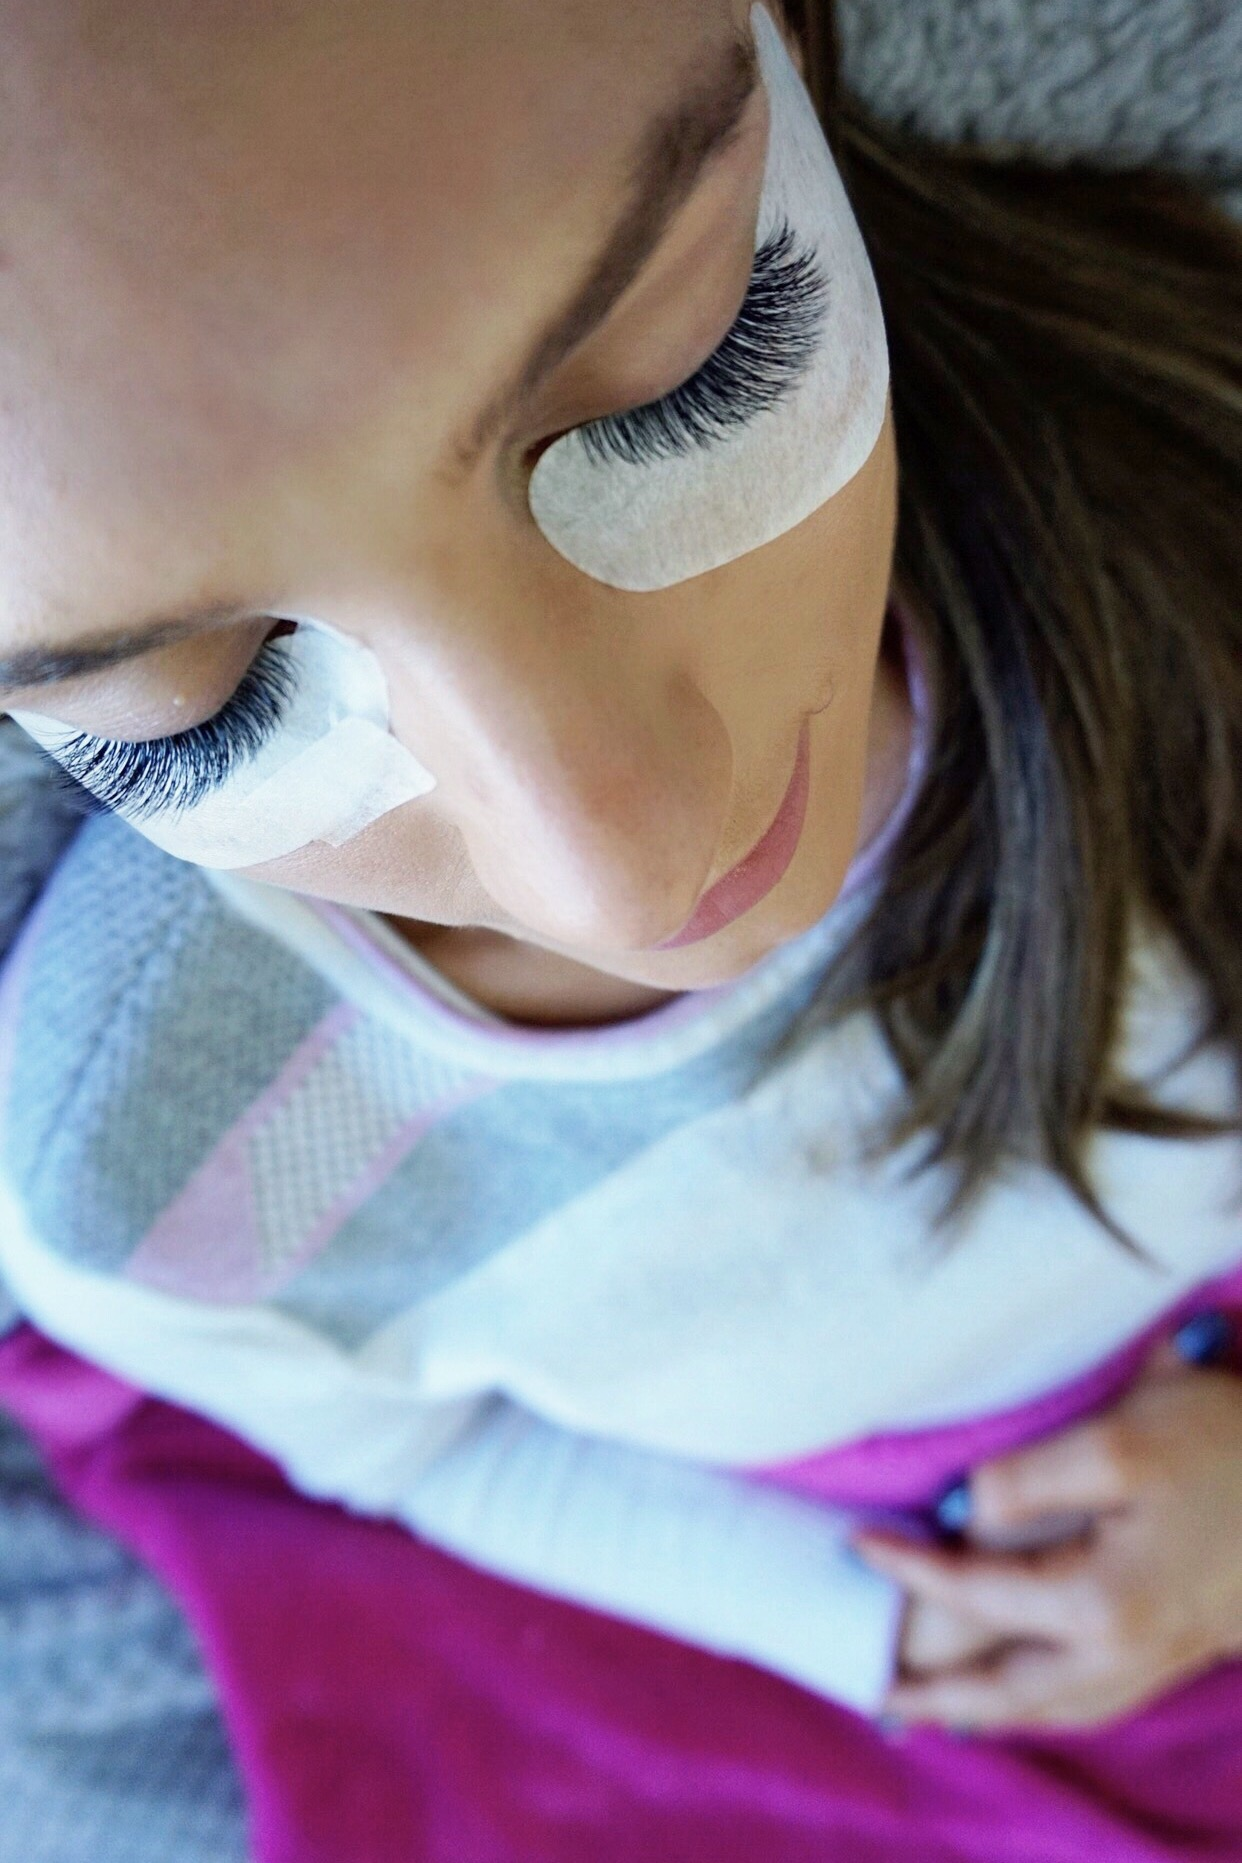 WHAT TO EXPECT FROM EYELASH EXTENSIONS